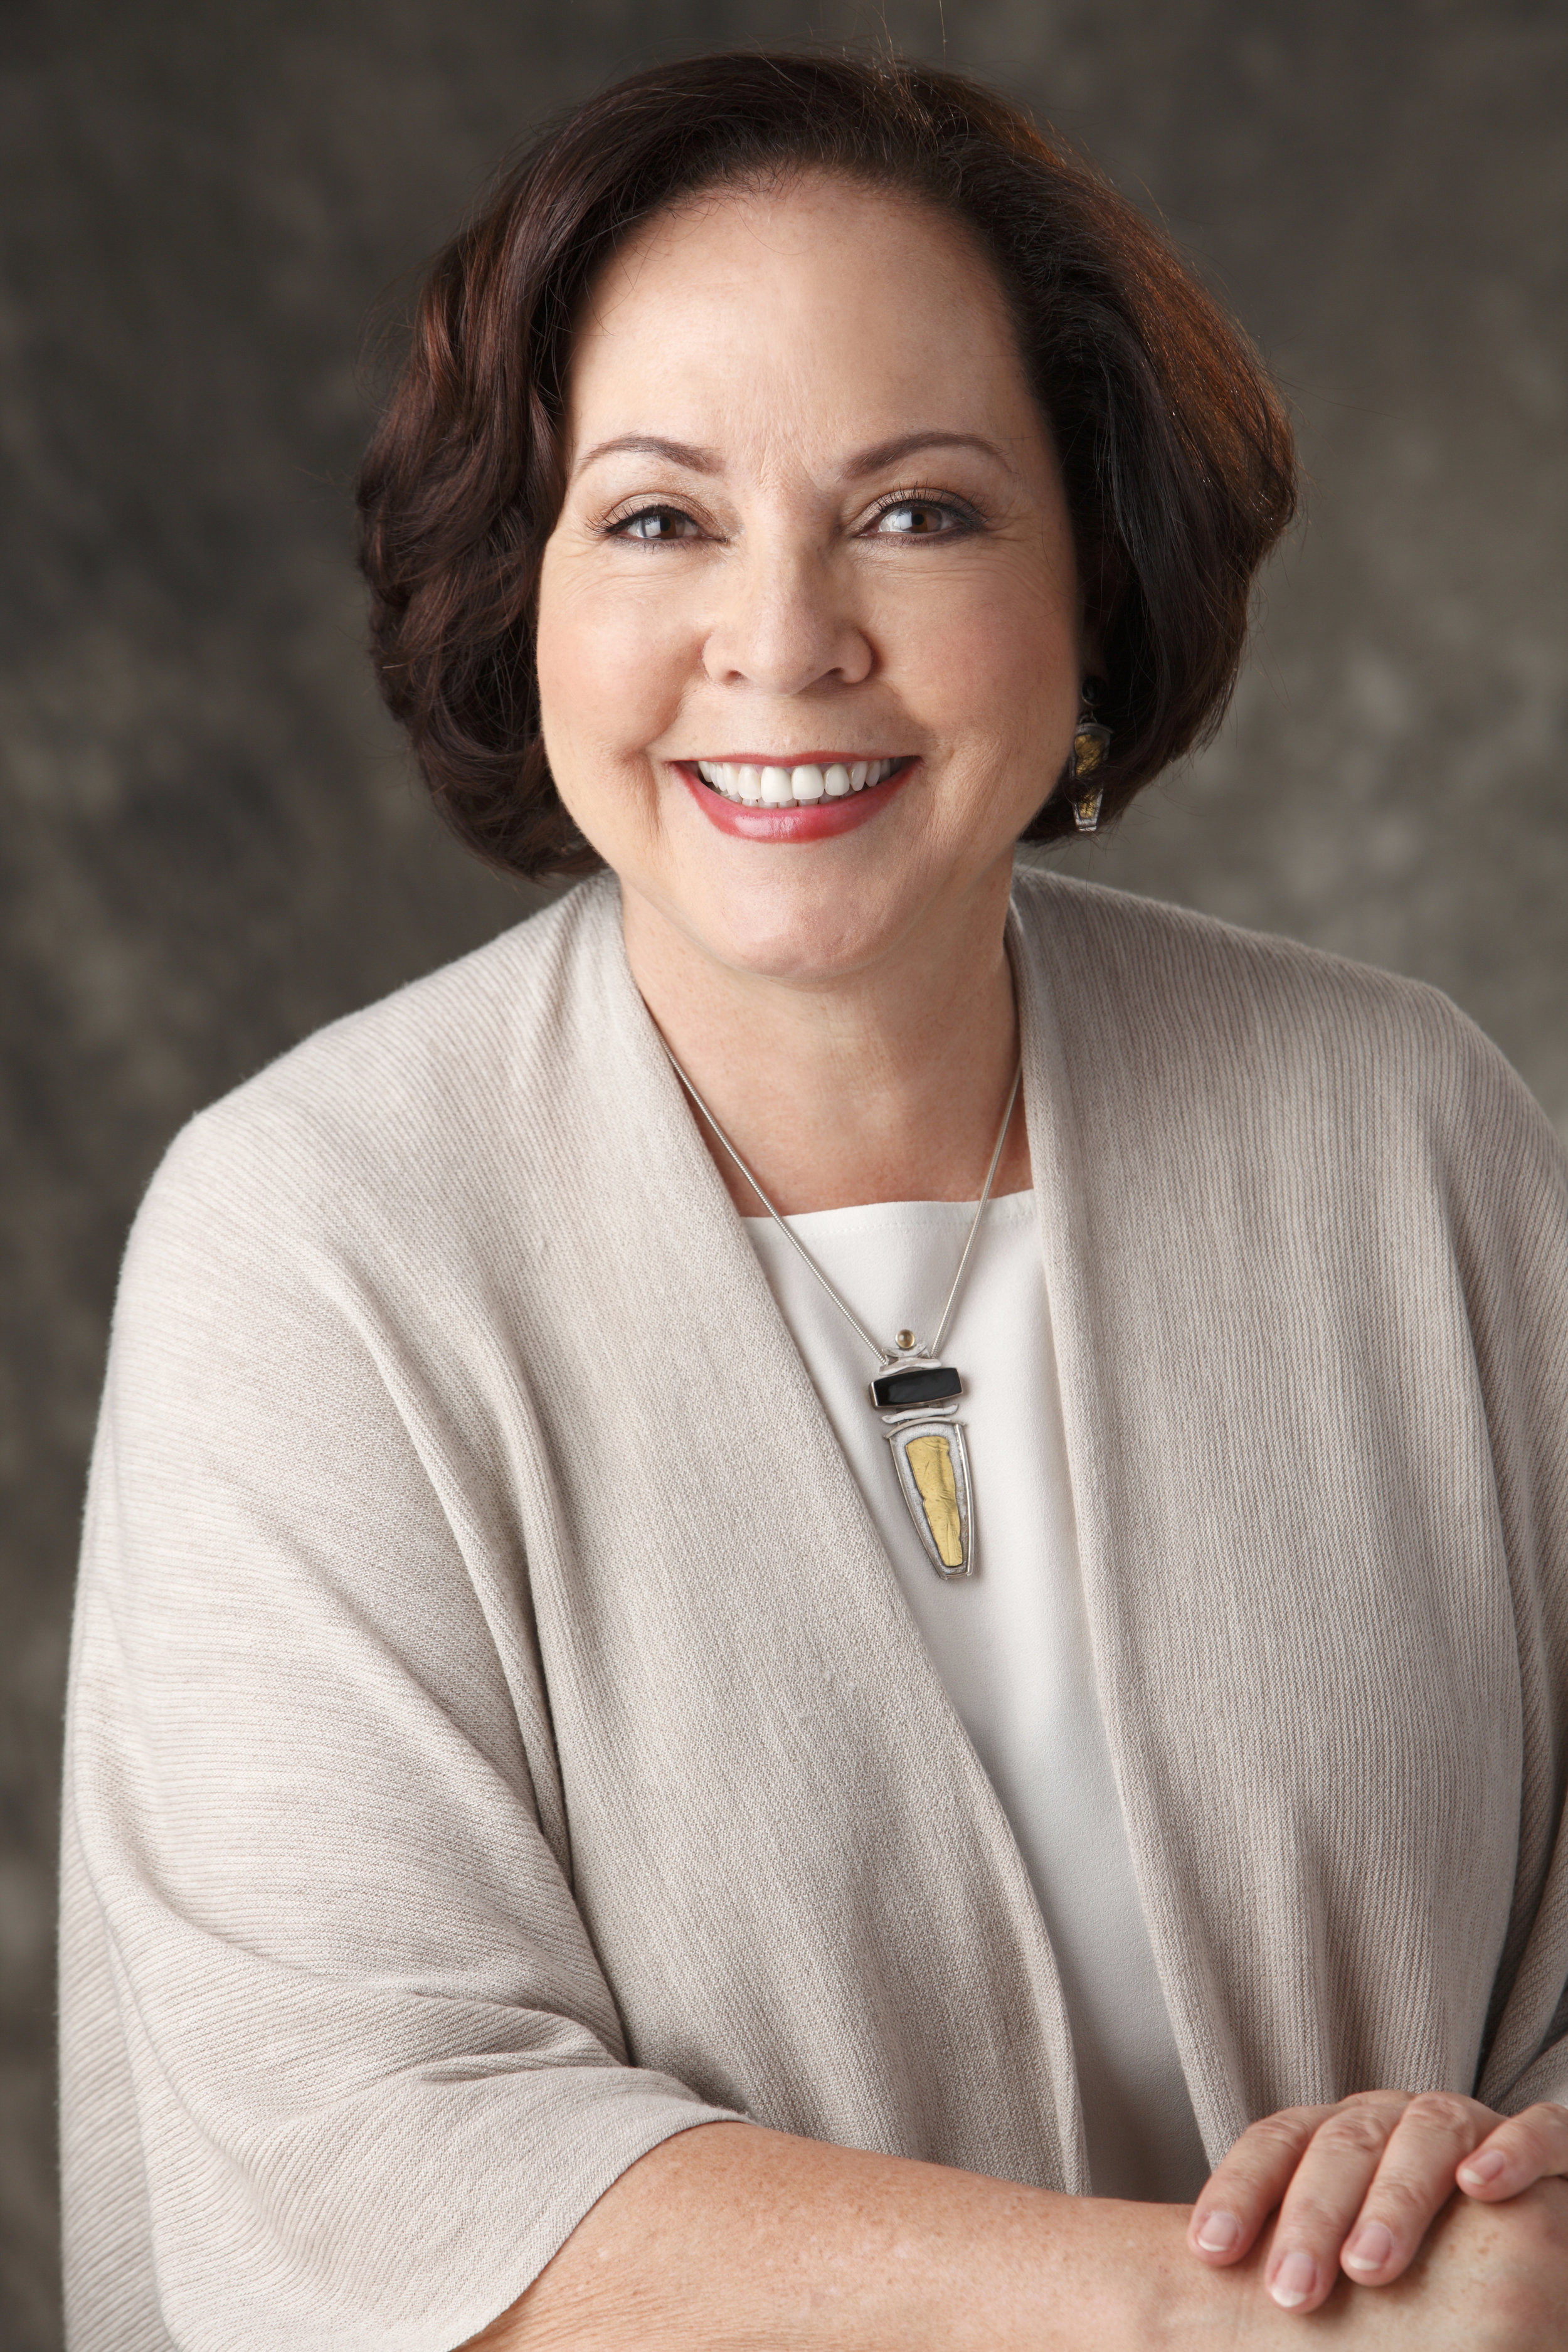 Carolyn ross, m.d., board certified addiction medicine specialist and preventive medicine specialist